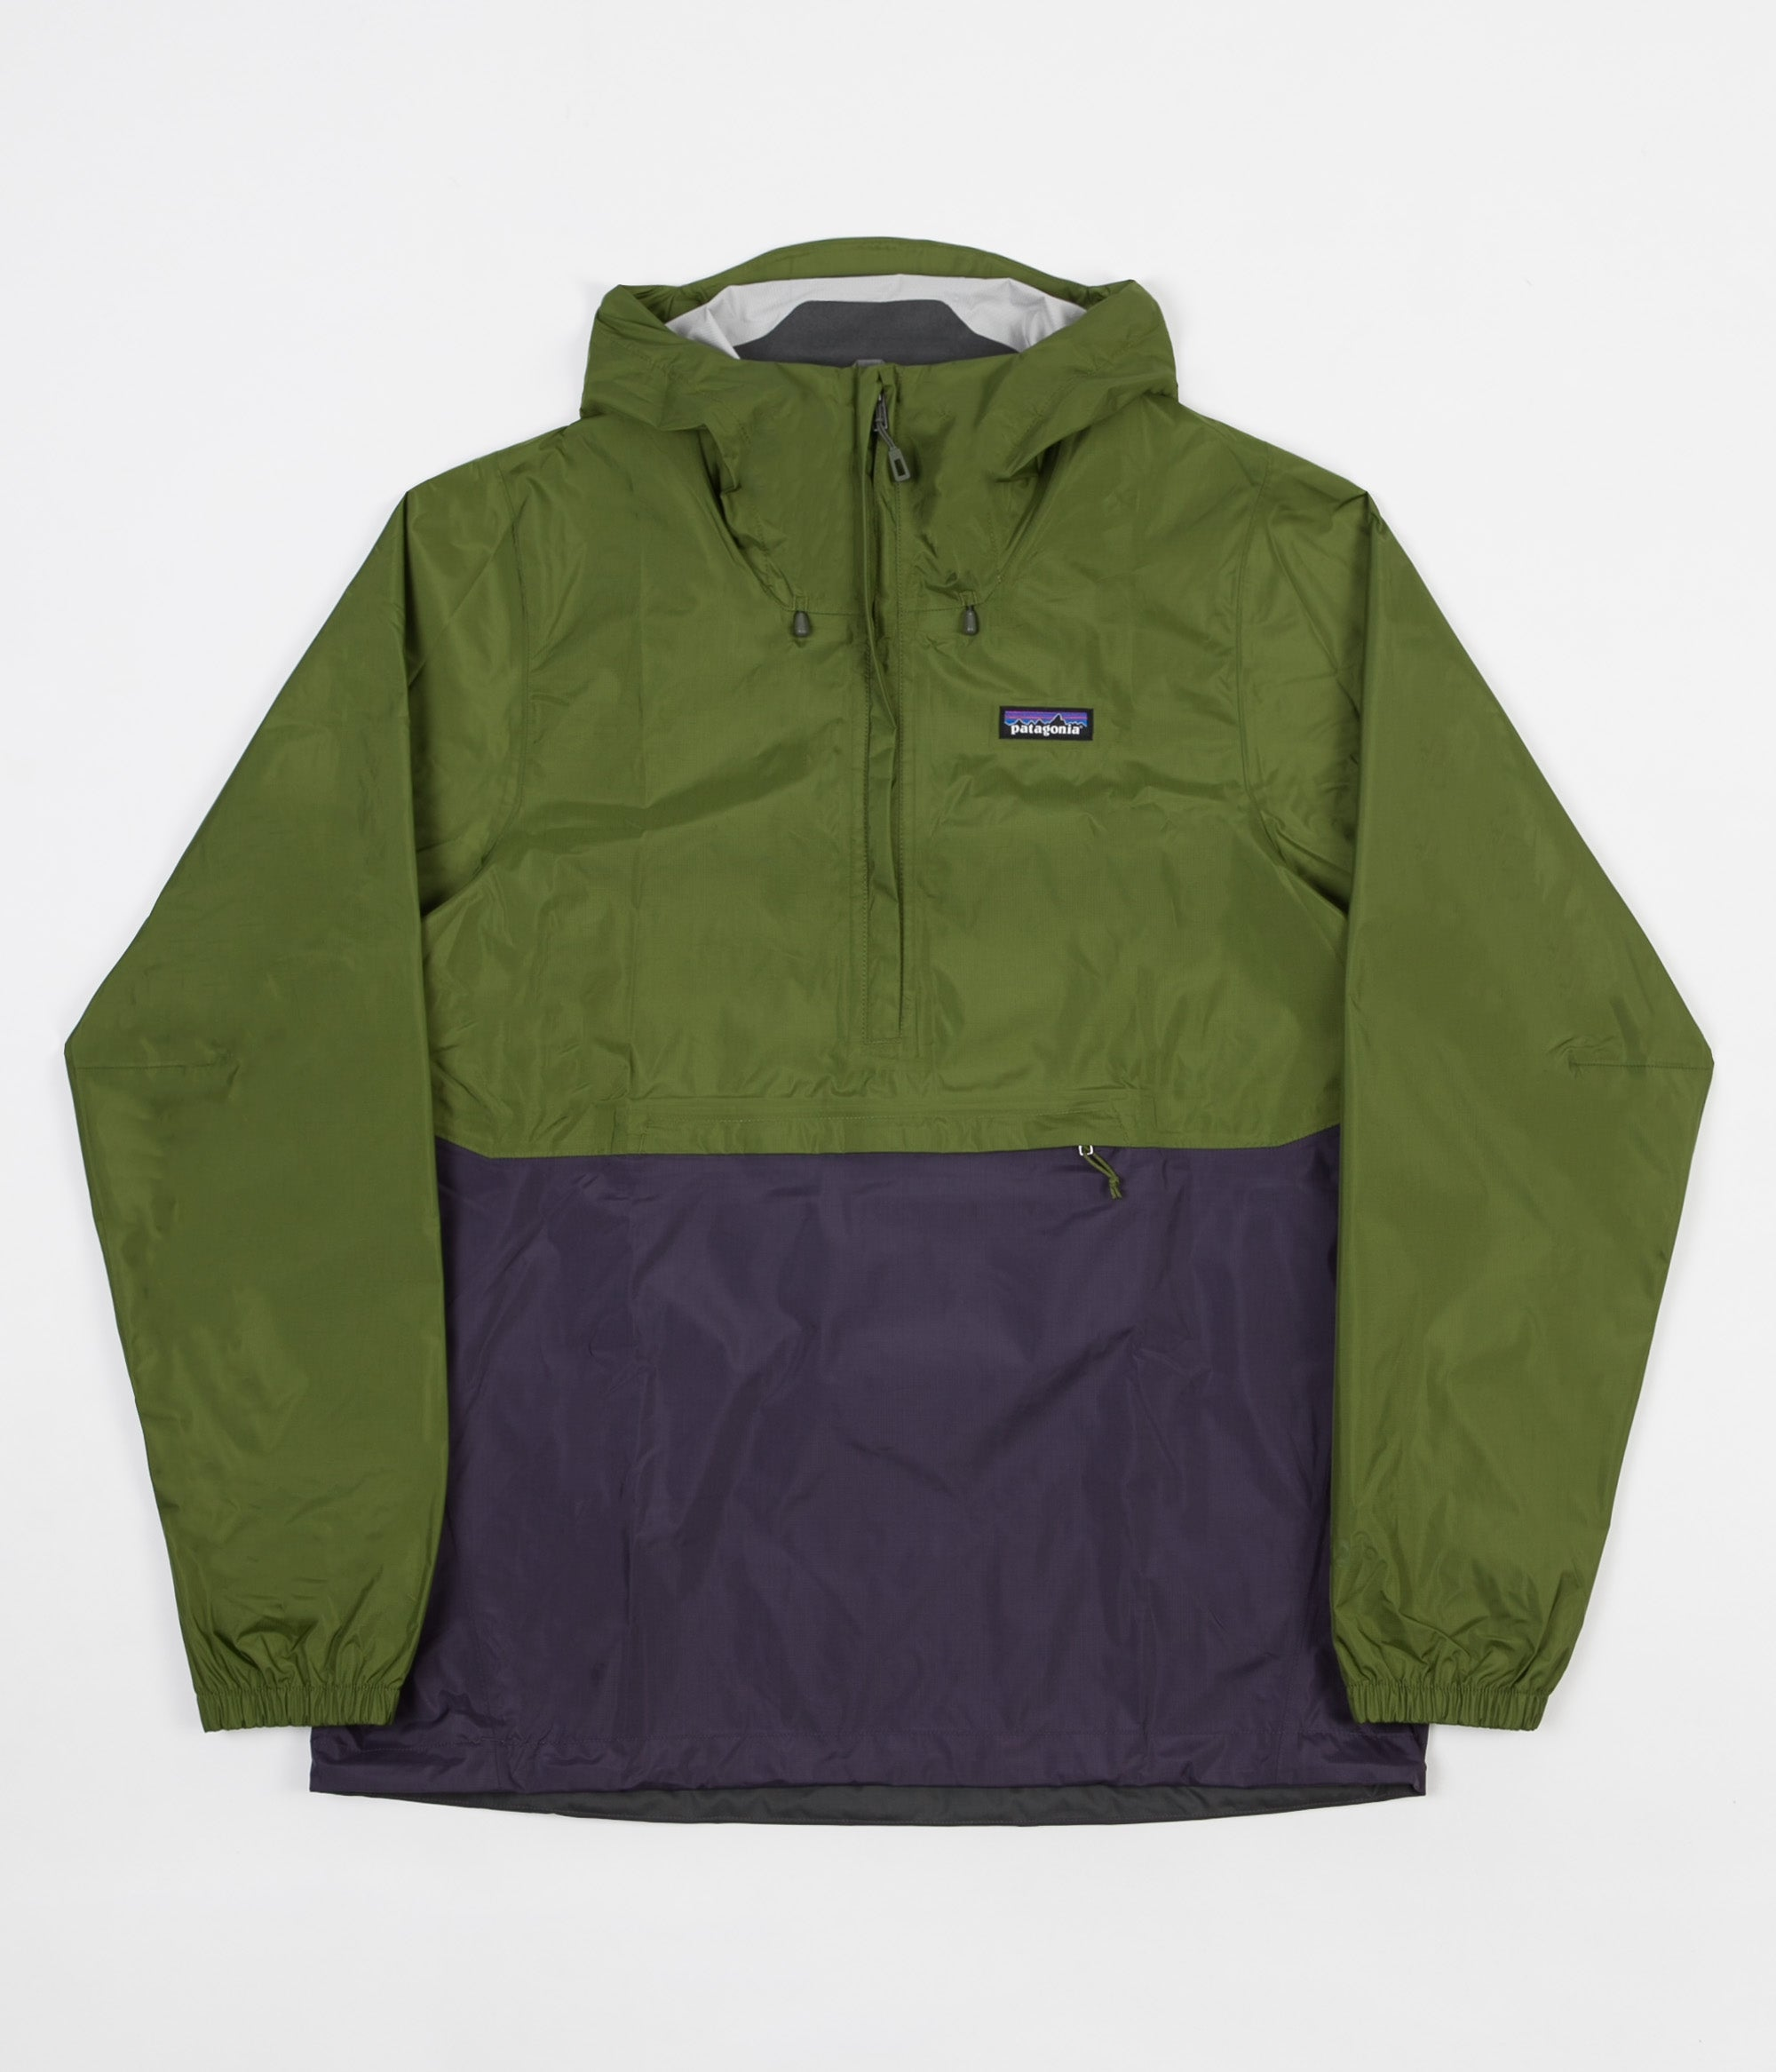 Patagonia Torrentshell Pullover Jacket - Sprouted Green  06124d02c